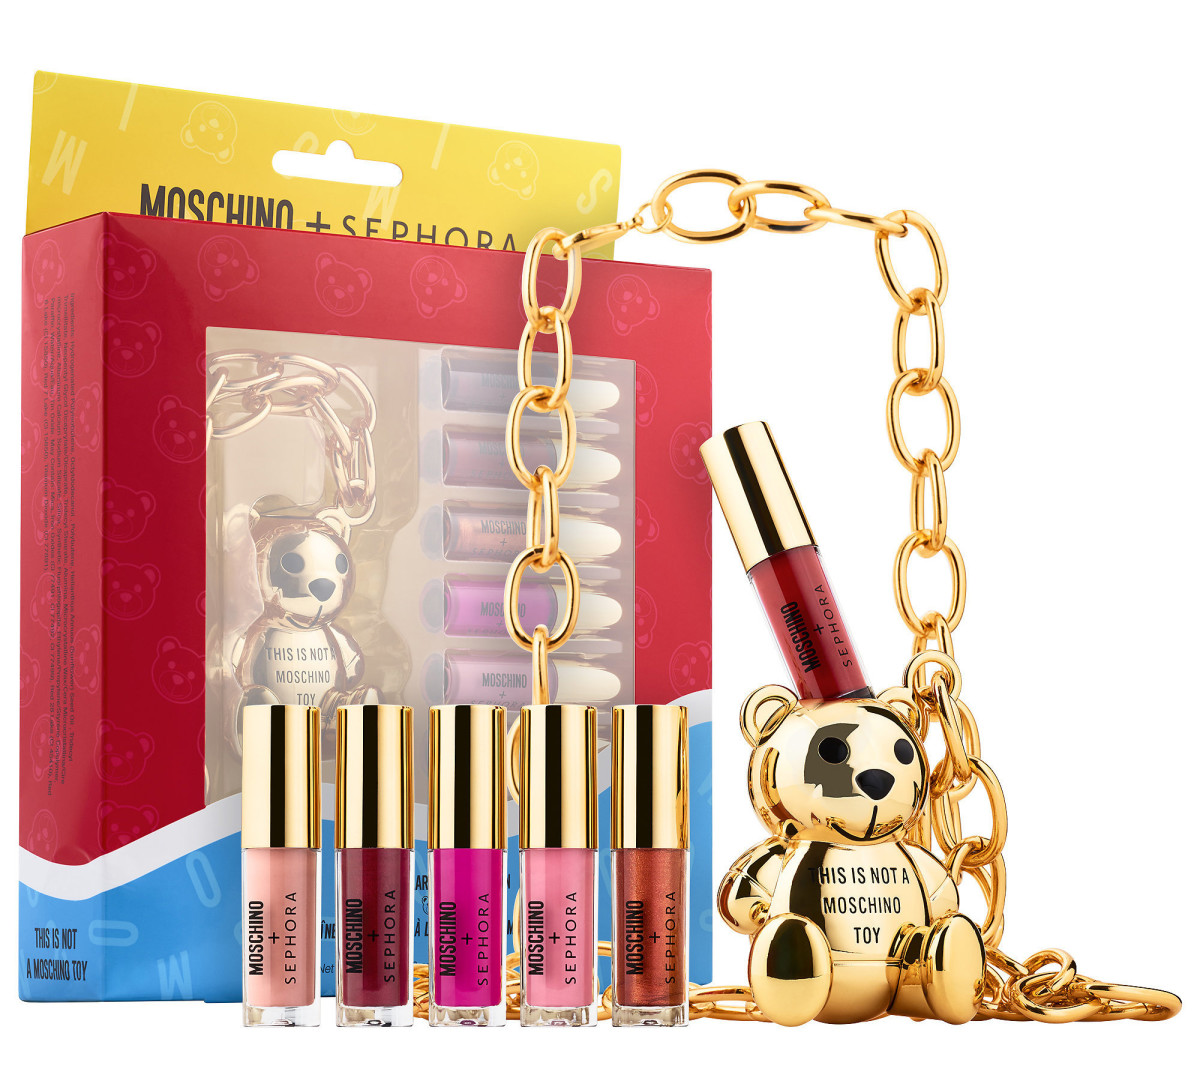 This limited-edition Moschino + Sephora Collection Bear Lip Gloss Chain is back! – for another limited time